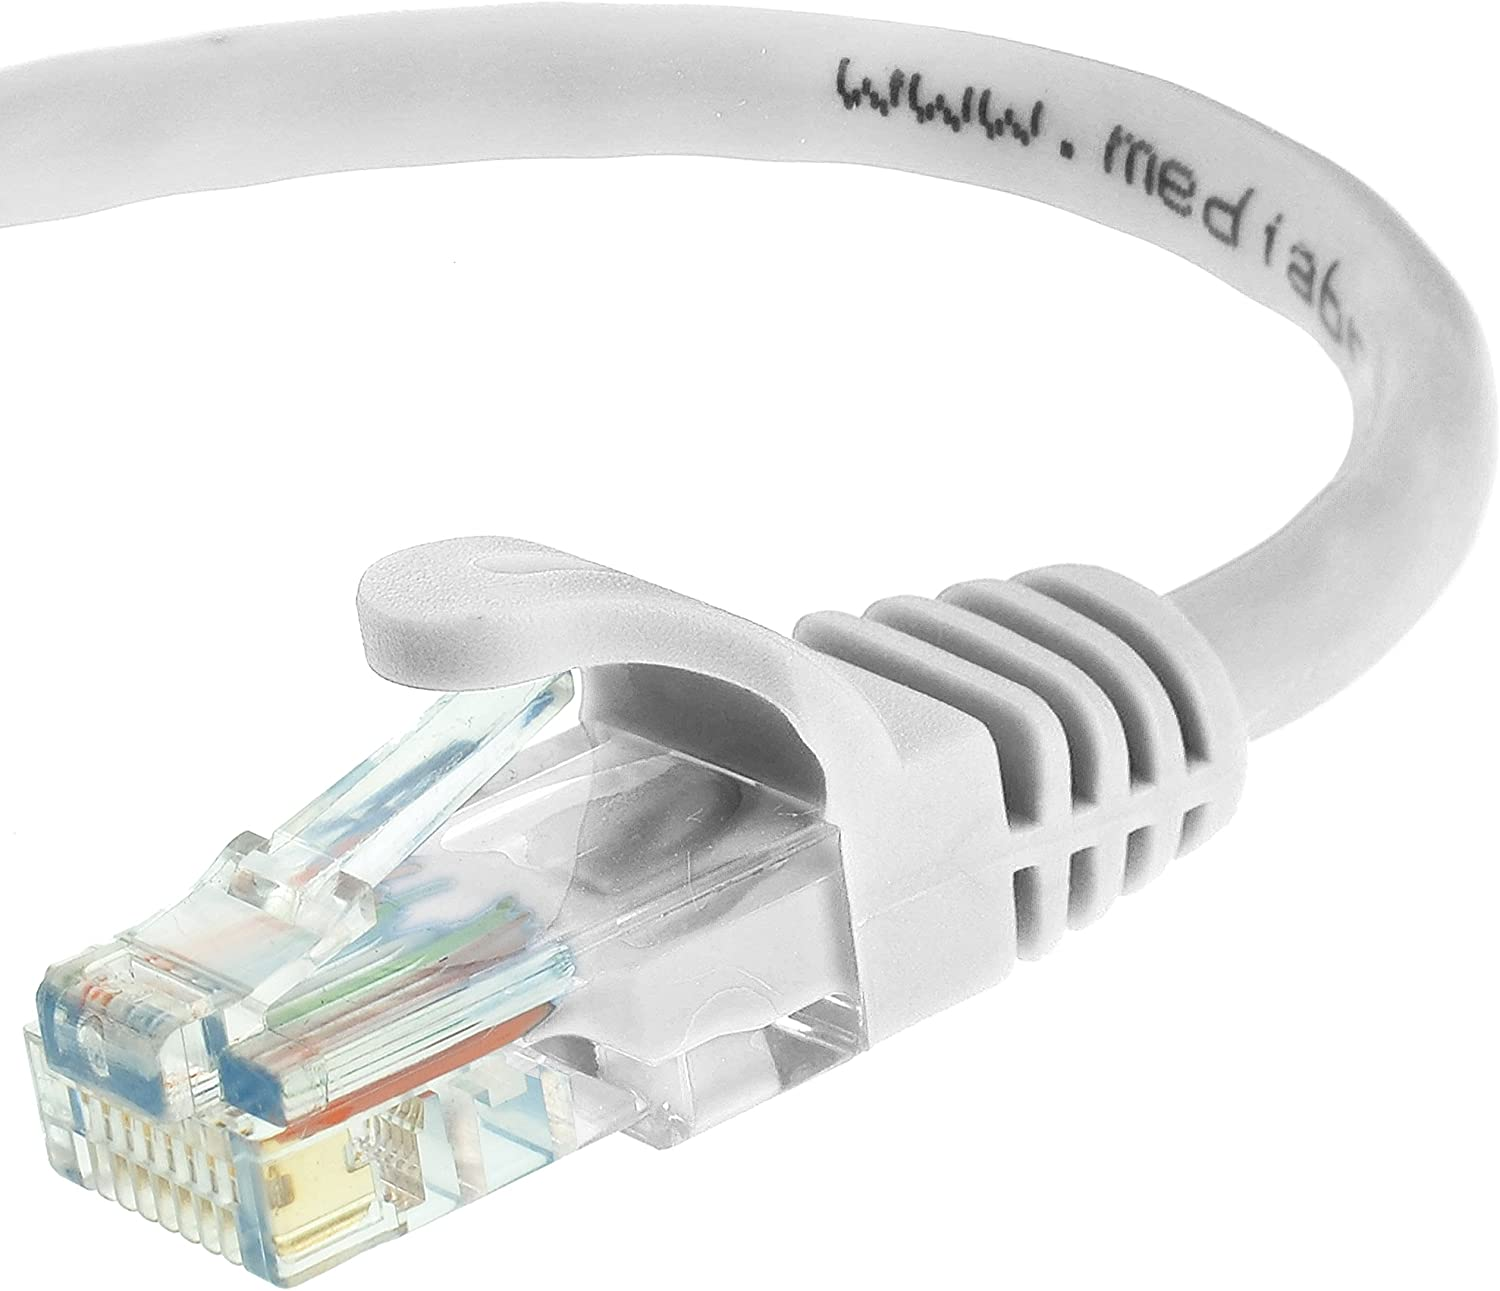 Mediabridge Ethernet Cable (100 Feet) - Supports Cat6 / Cat5e / Cat5 Standards, 550MHz, 10Gbps - RJ45 Computer Networking Cord (Part# 31-299-100B): Computers & Accessories